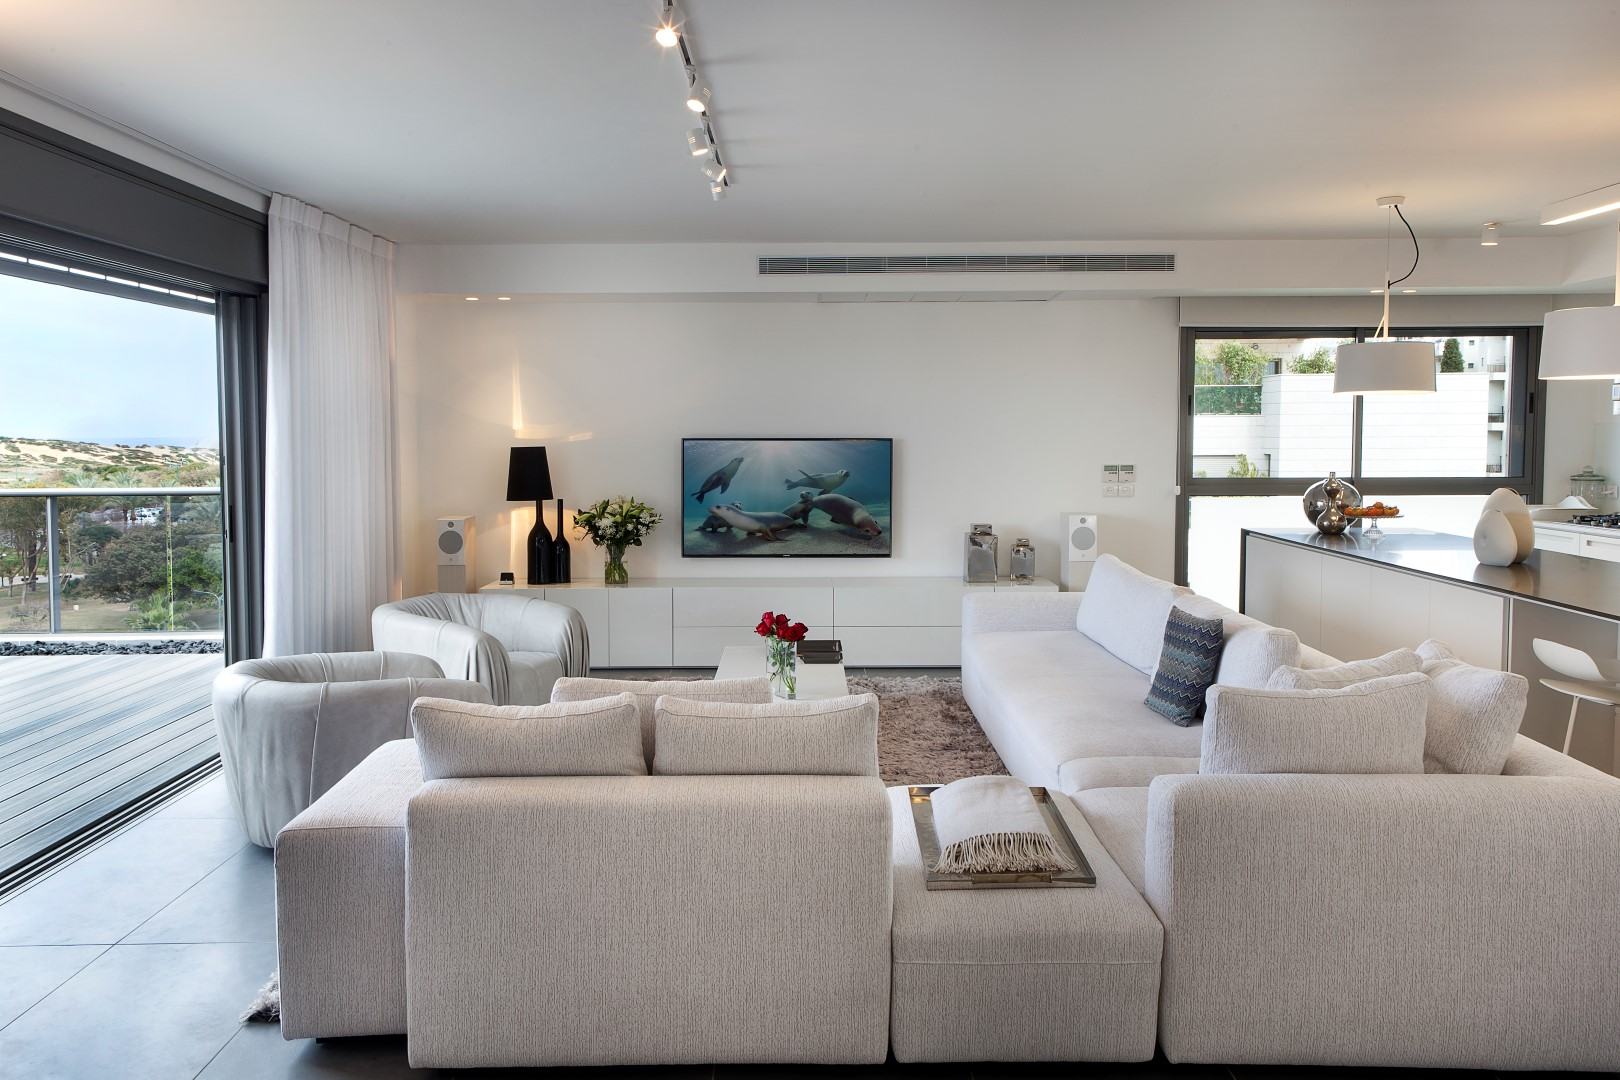 Azorei Chen Penthouse - Living room 3